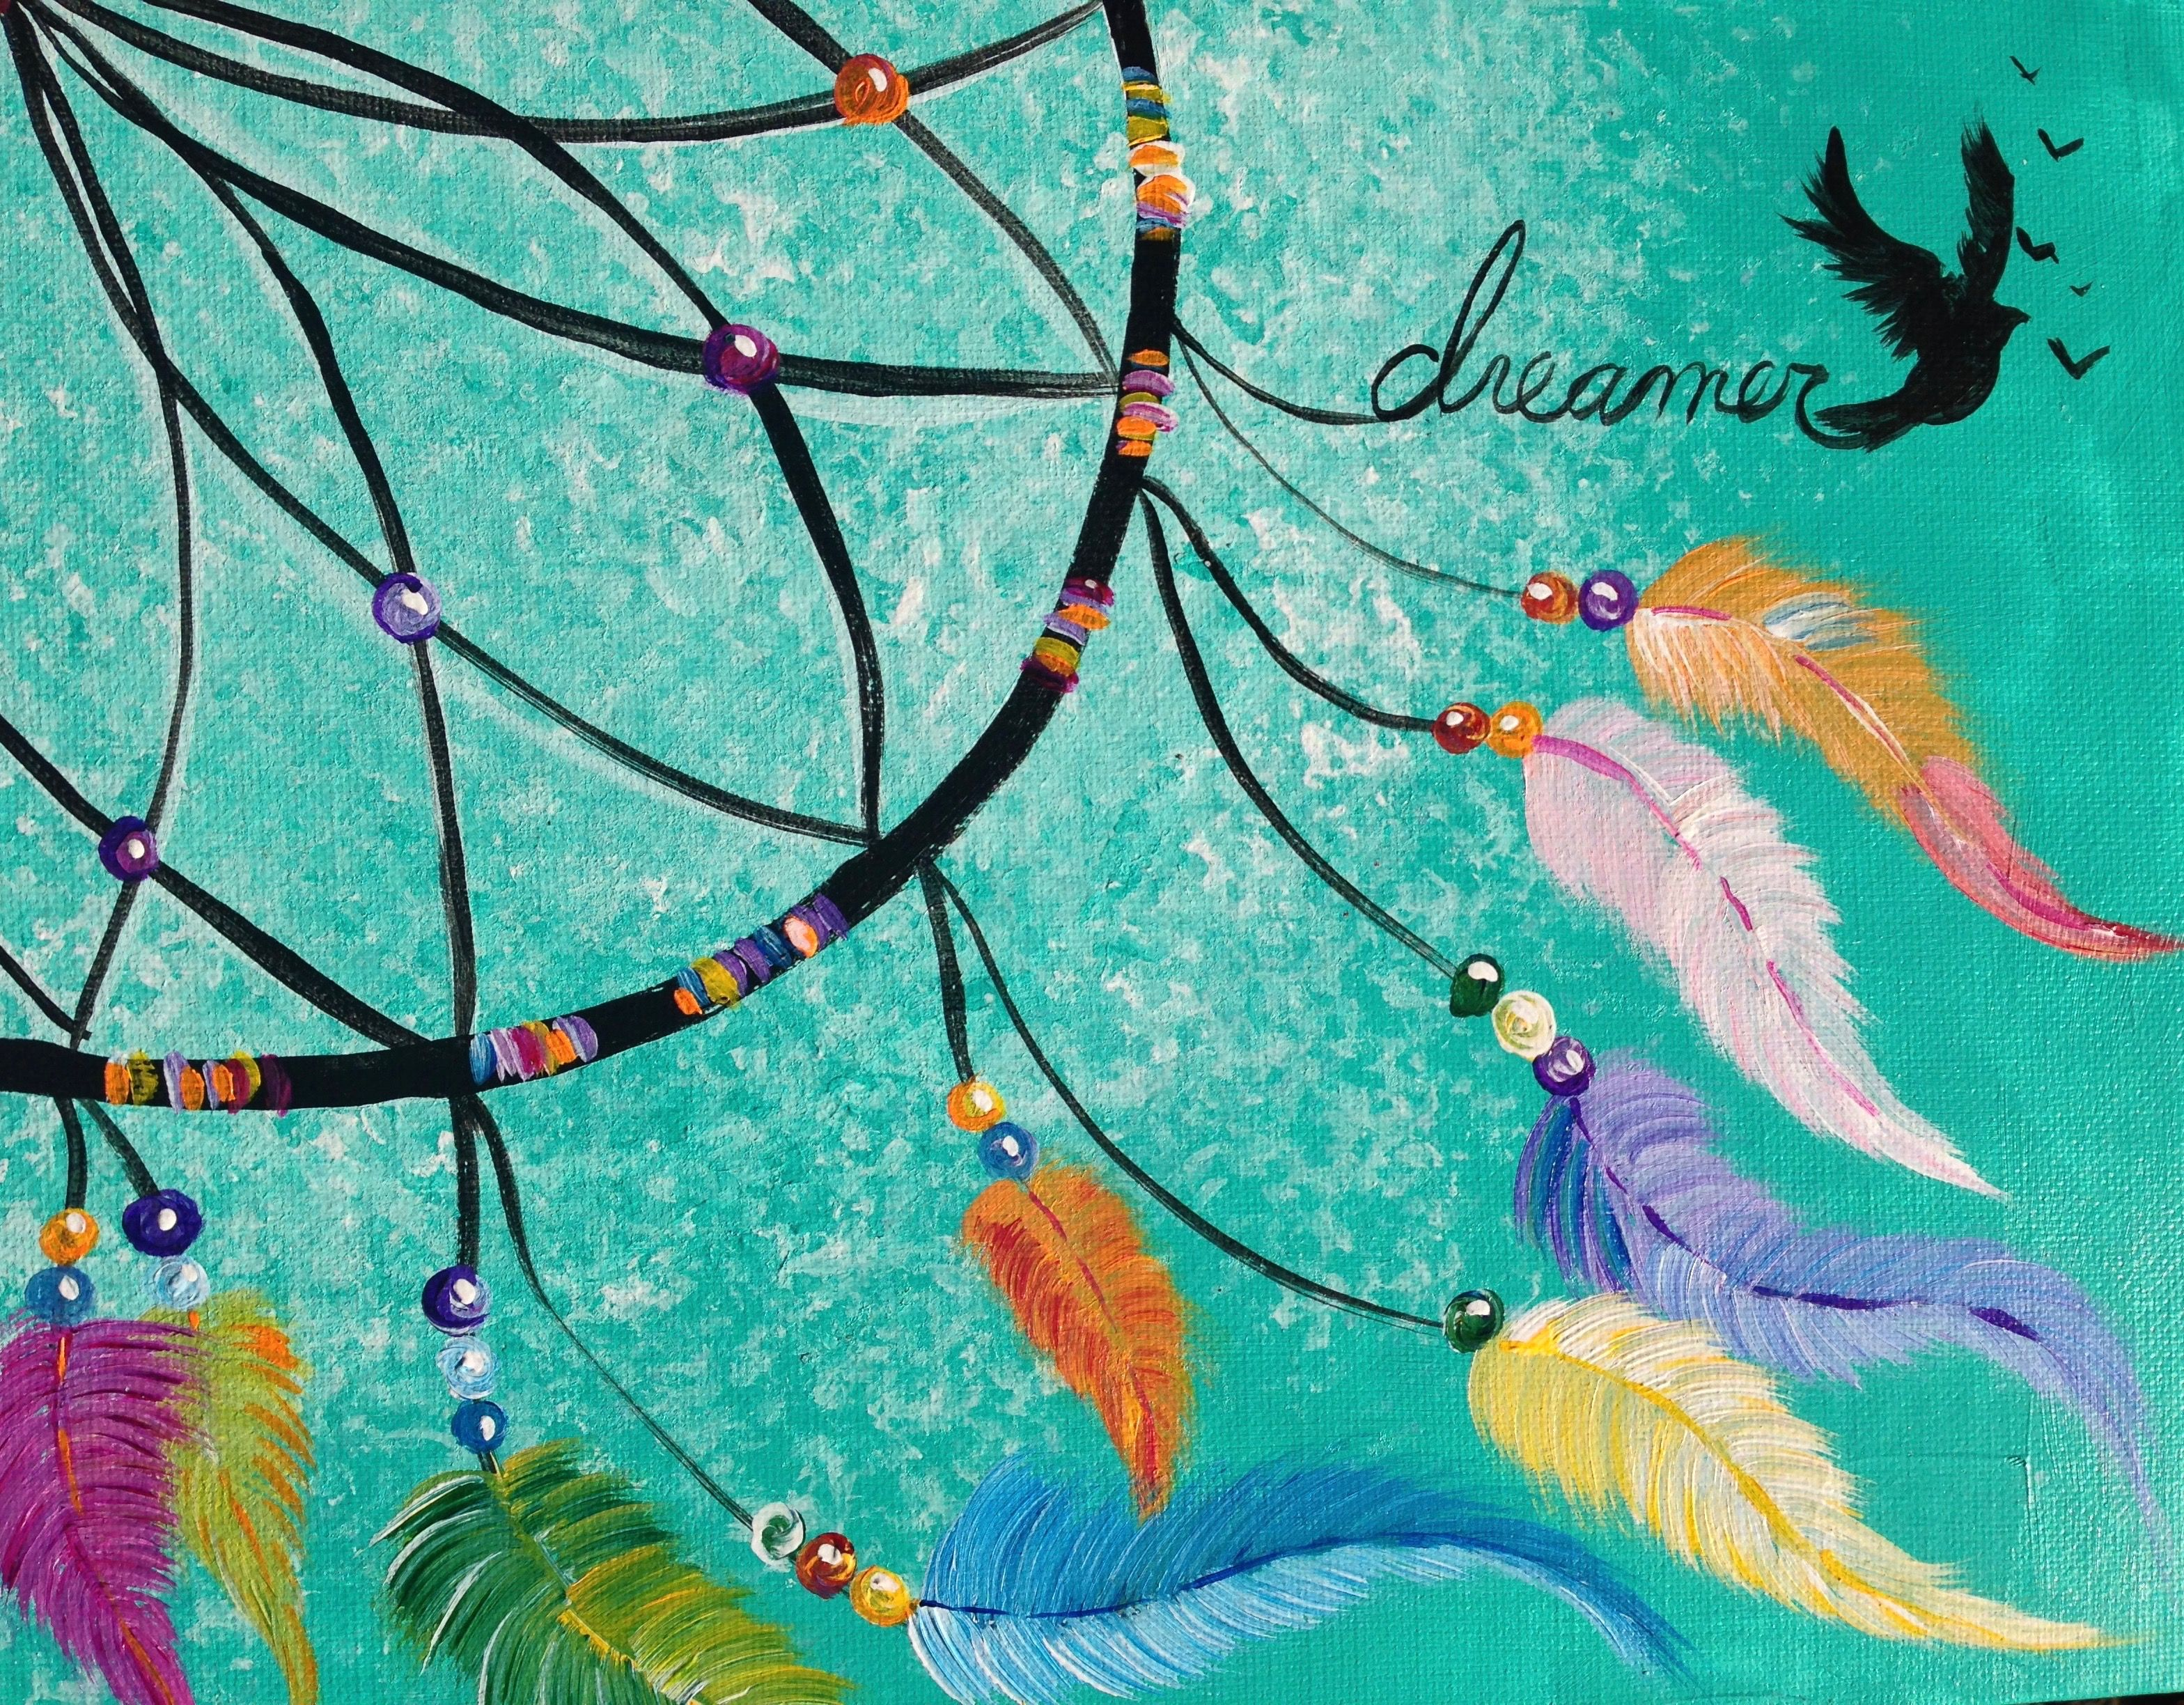 Dreamcatcher Step By Step Acrylic Painting Lesson On Canvas For Beginners Tutorial The Art Sherpa Dream Catcher Painting Canvas Painting Diy Beginner Painting